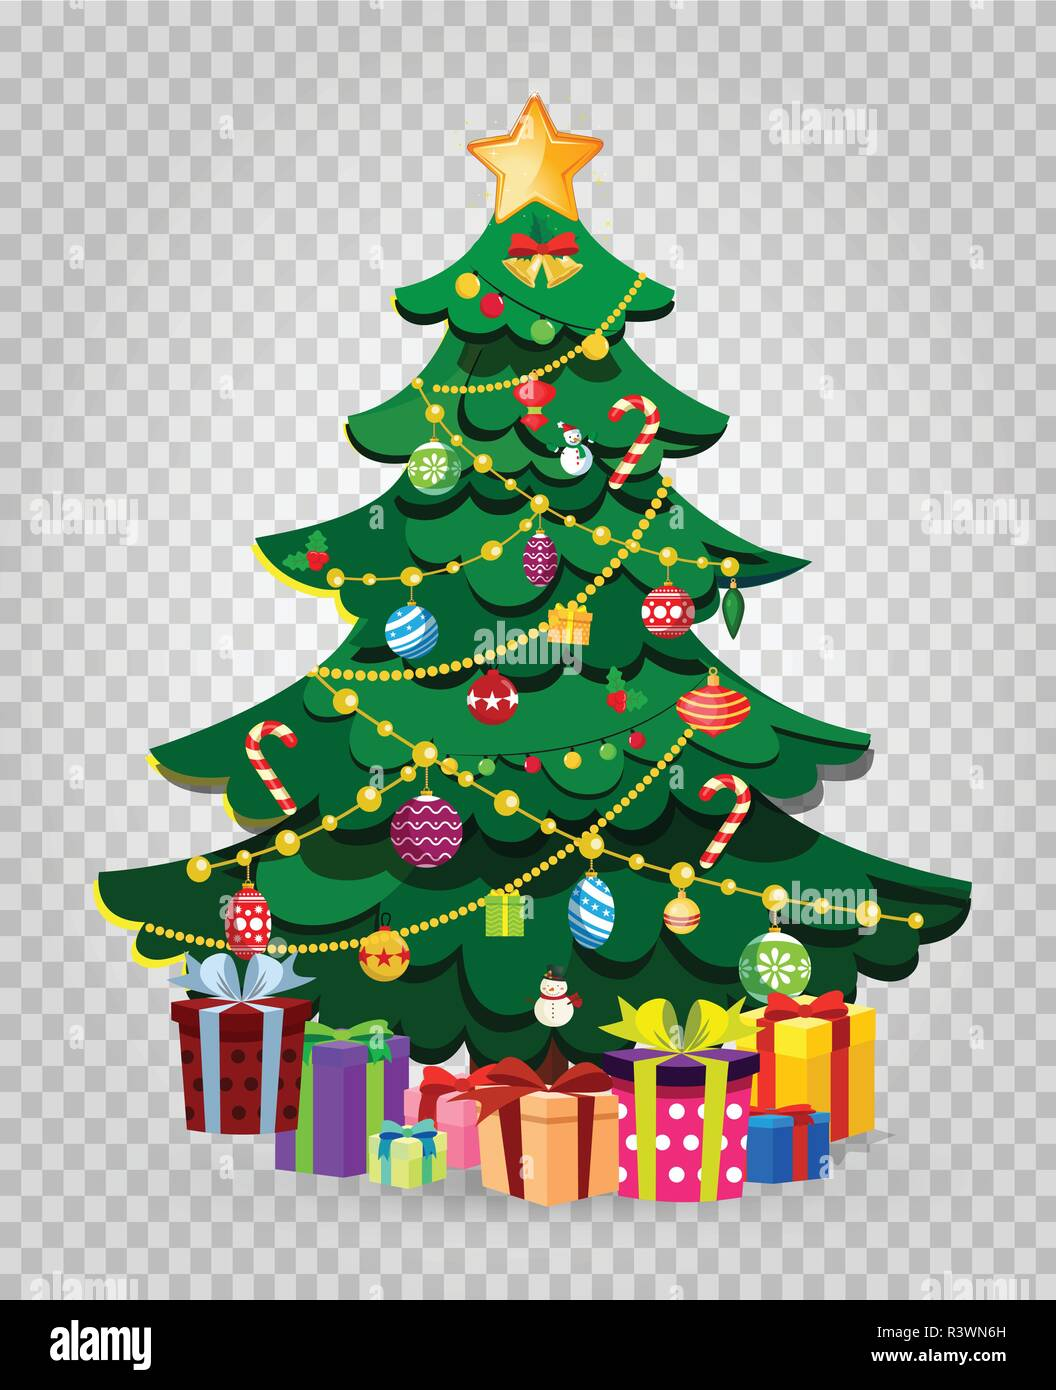 Cute cartoon decorated Christmas fir tree with many gifts